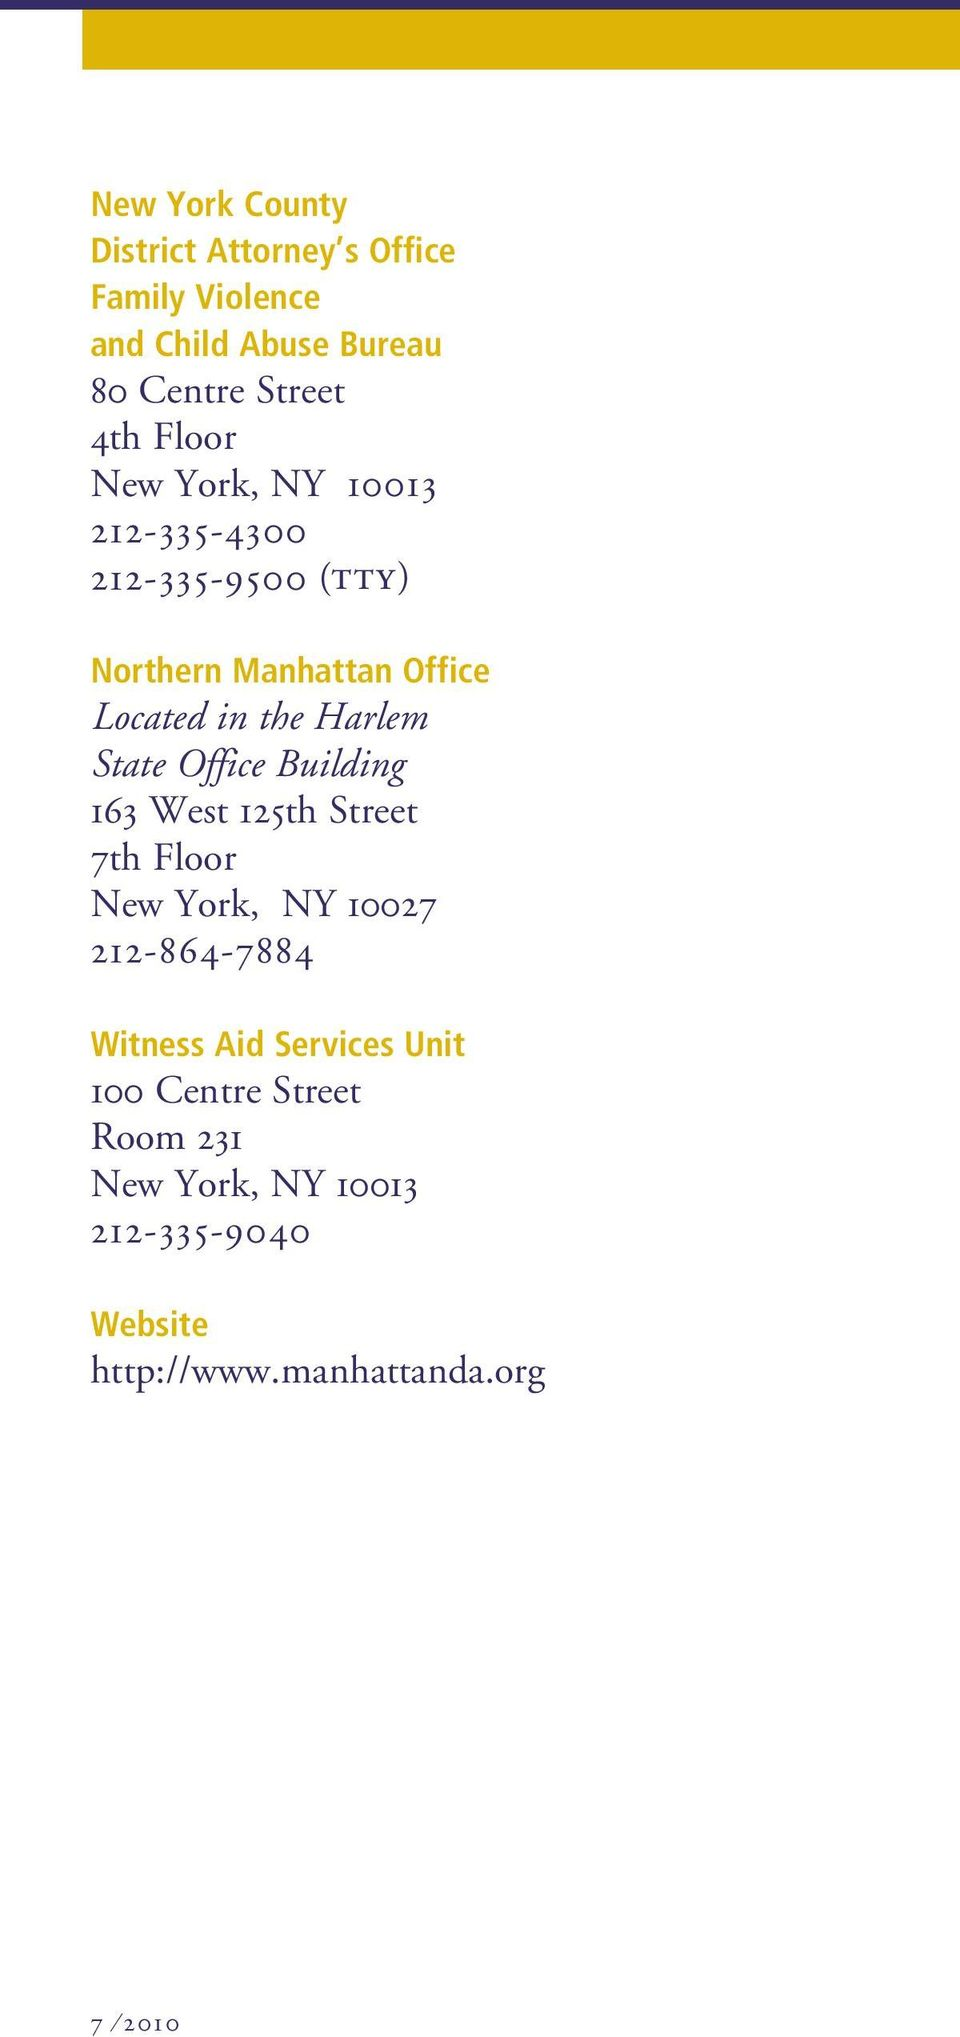 State Office Building 163 West 125th Street 7th Floor New York, NY 10027 212-864-7884 Witness Aid